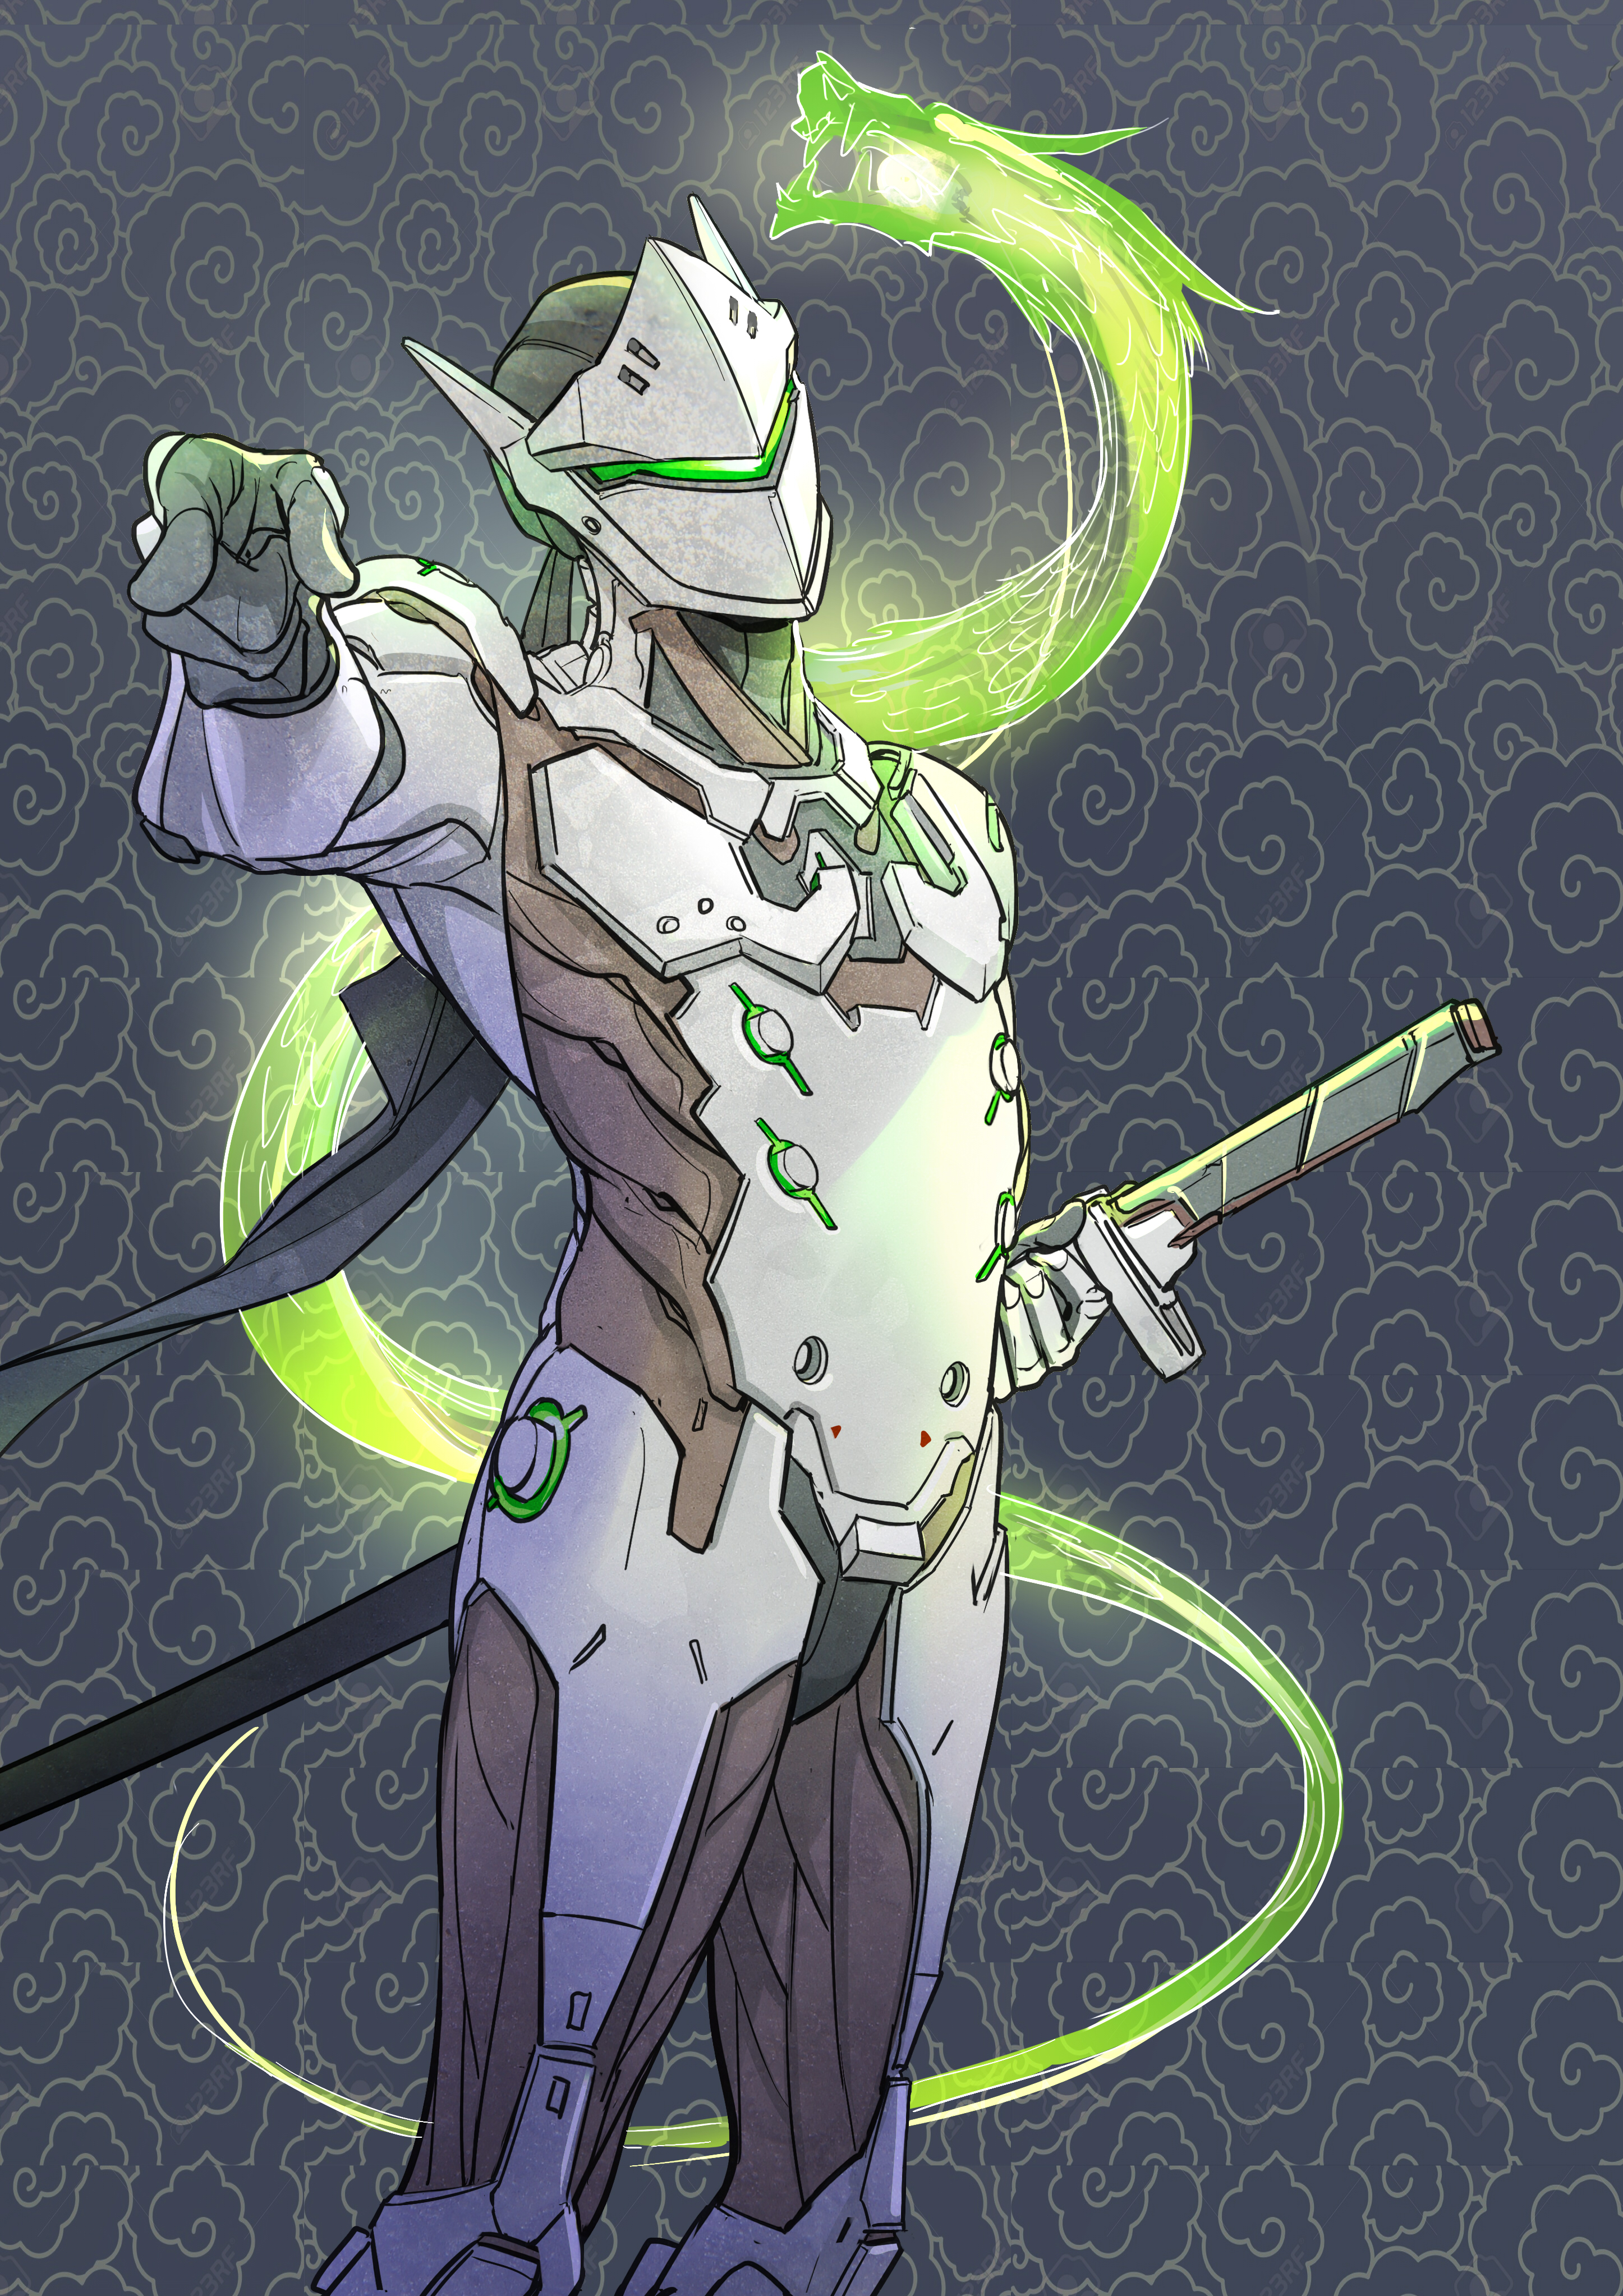 GENJI IS WITH YOU